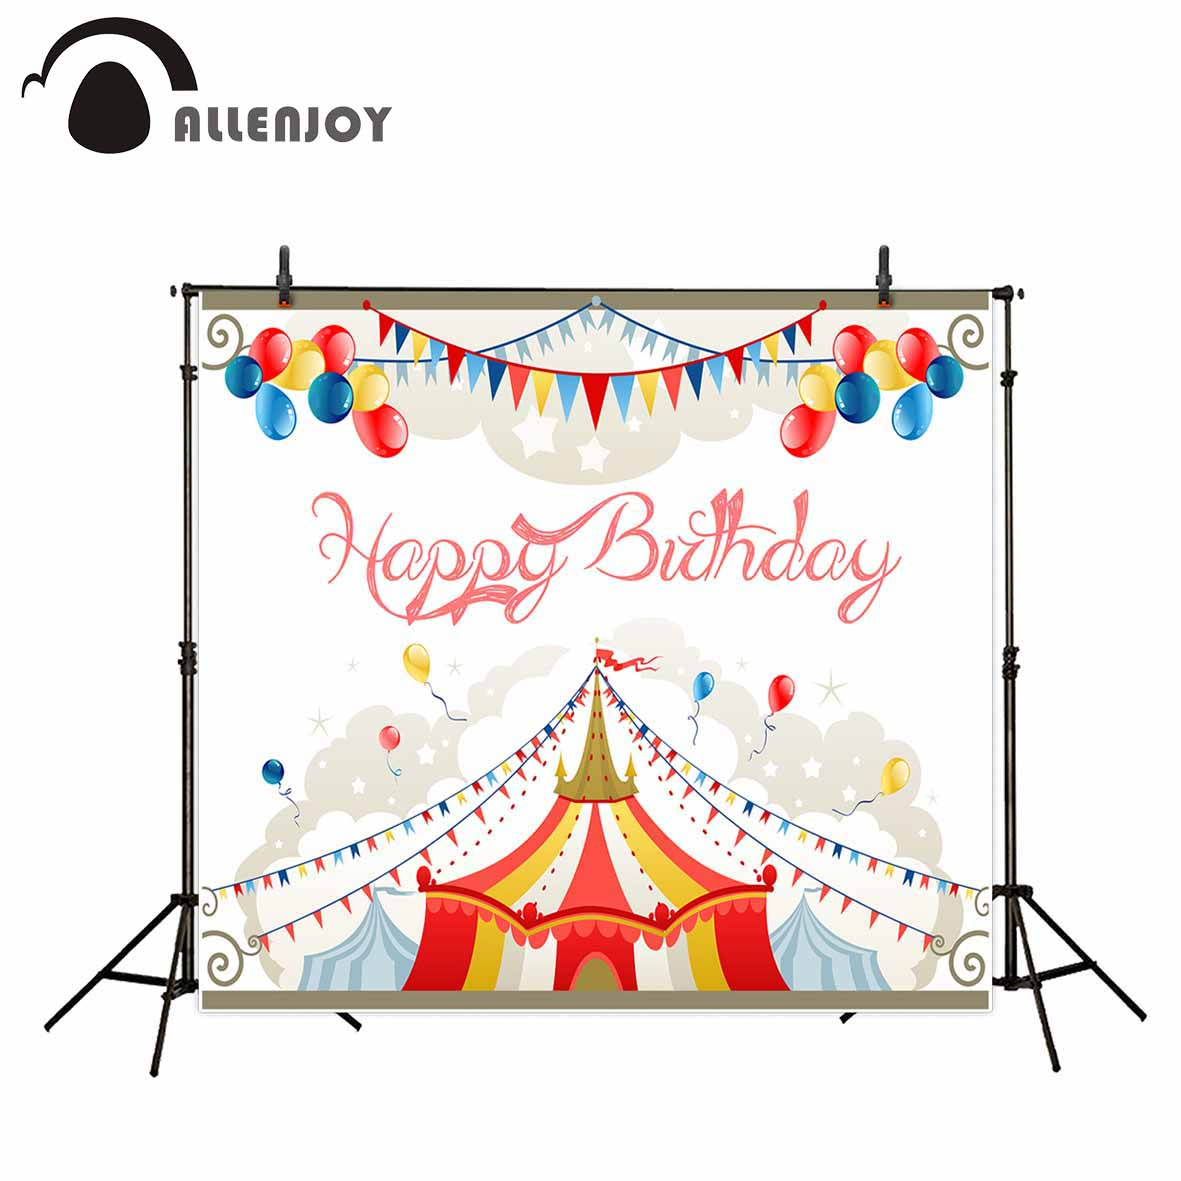 Allenjoy backdrop for photo studio circus birthday balloons flags party background portrait shooting photocall  photobooth meking photographic studio photo table shooting tables with plexi cover 1m 2m background shooting board